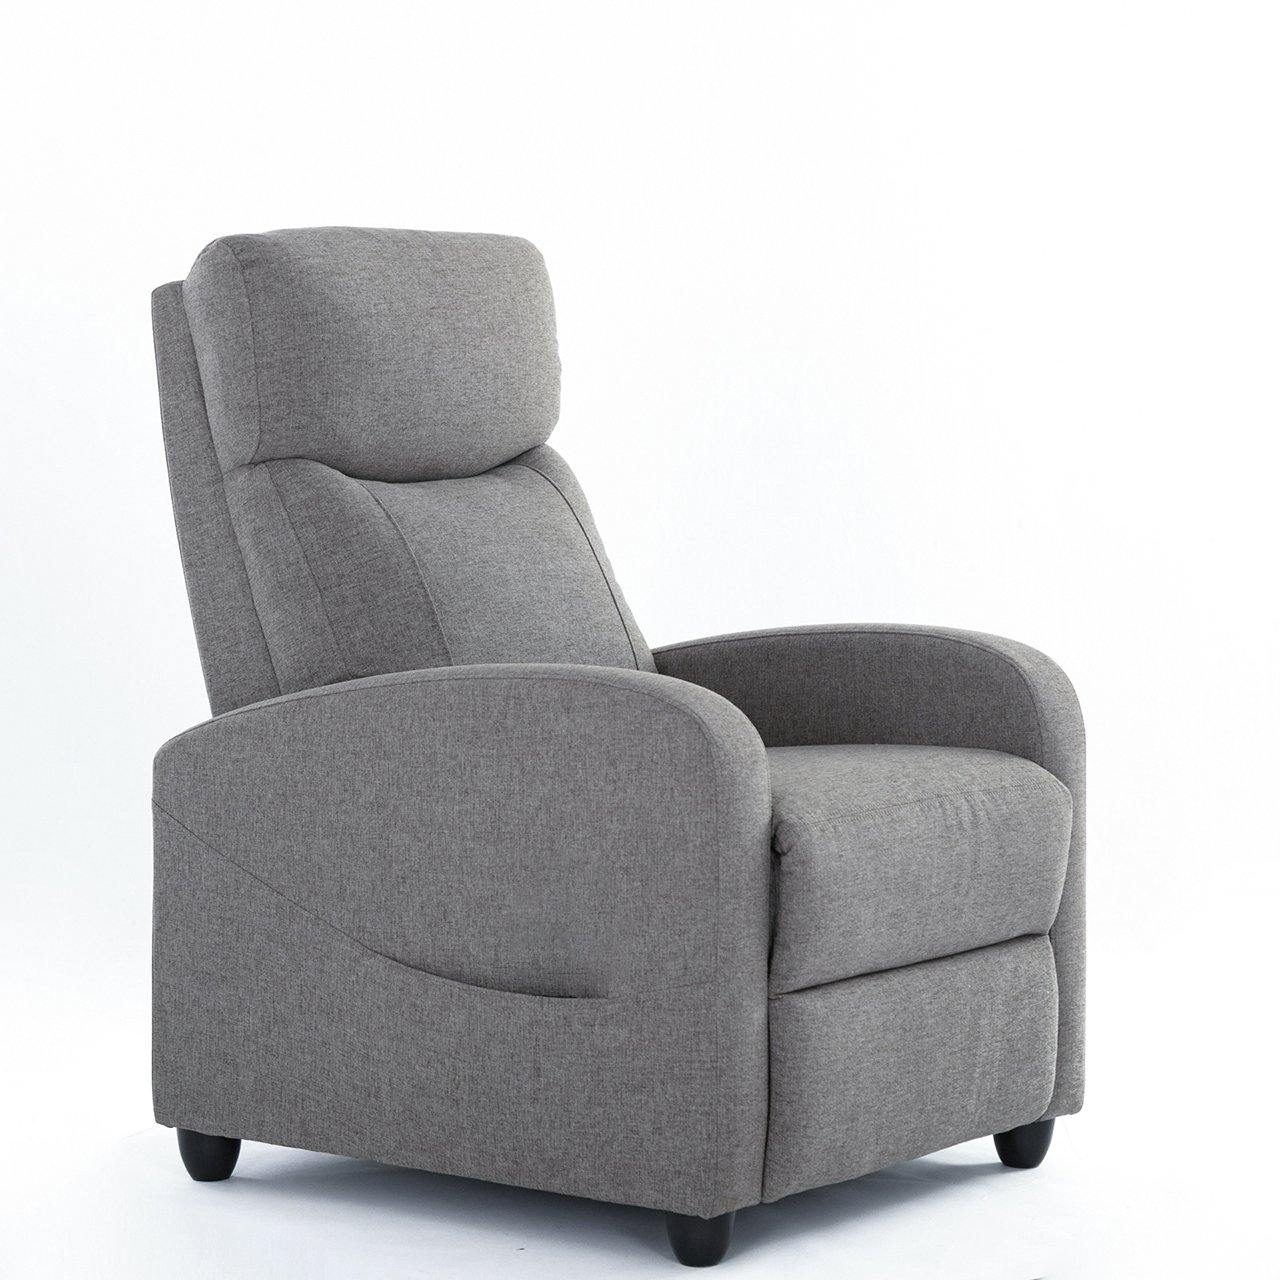 Milemont Recliner Sofa Chair, Reclining Chair with Padded Seat Backrest, Gray